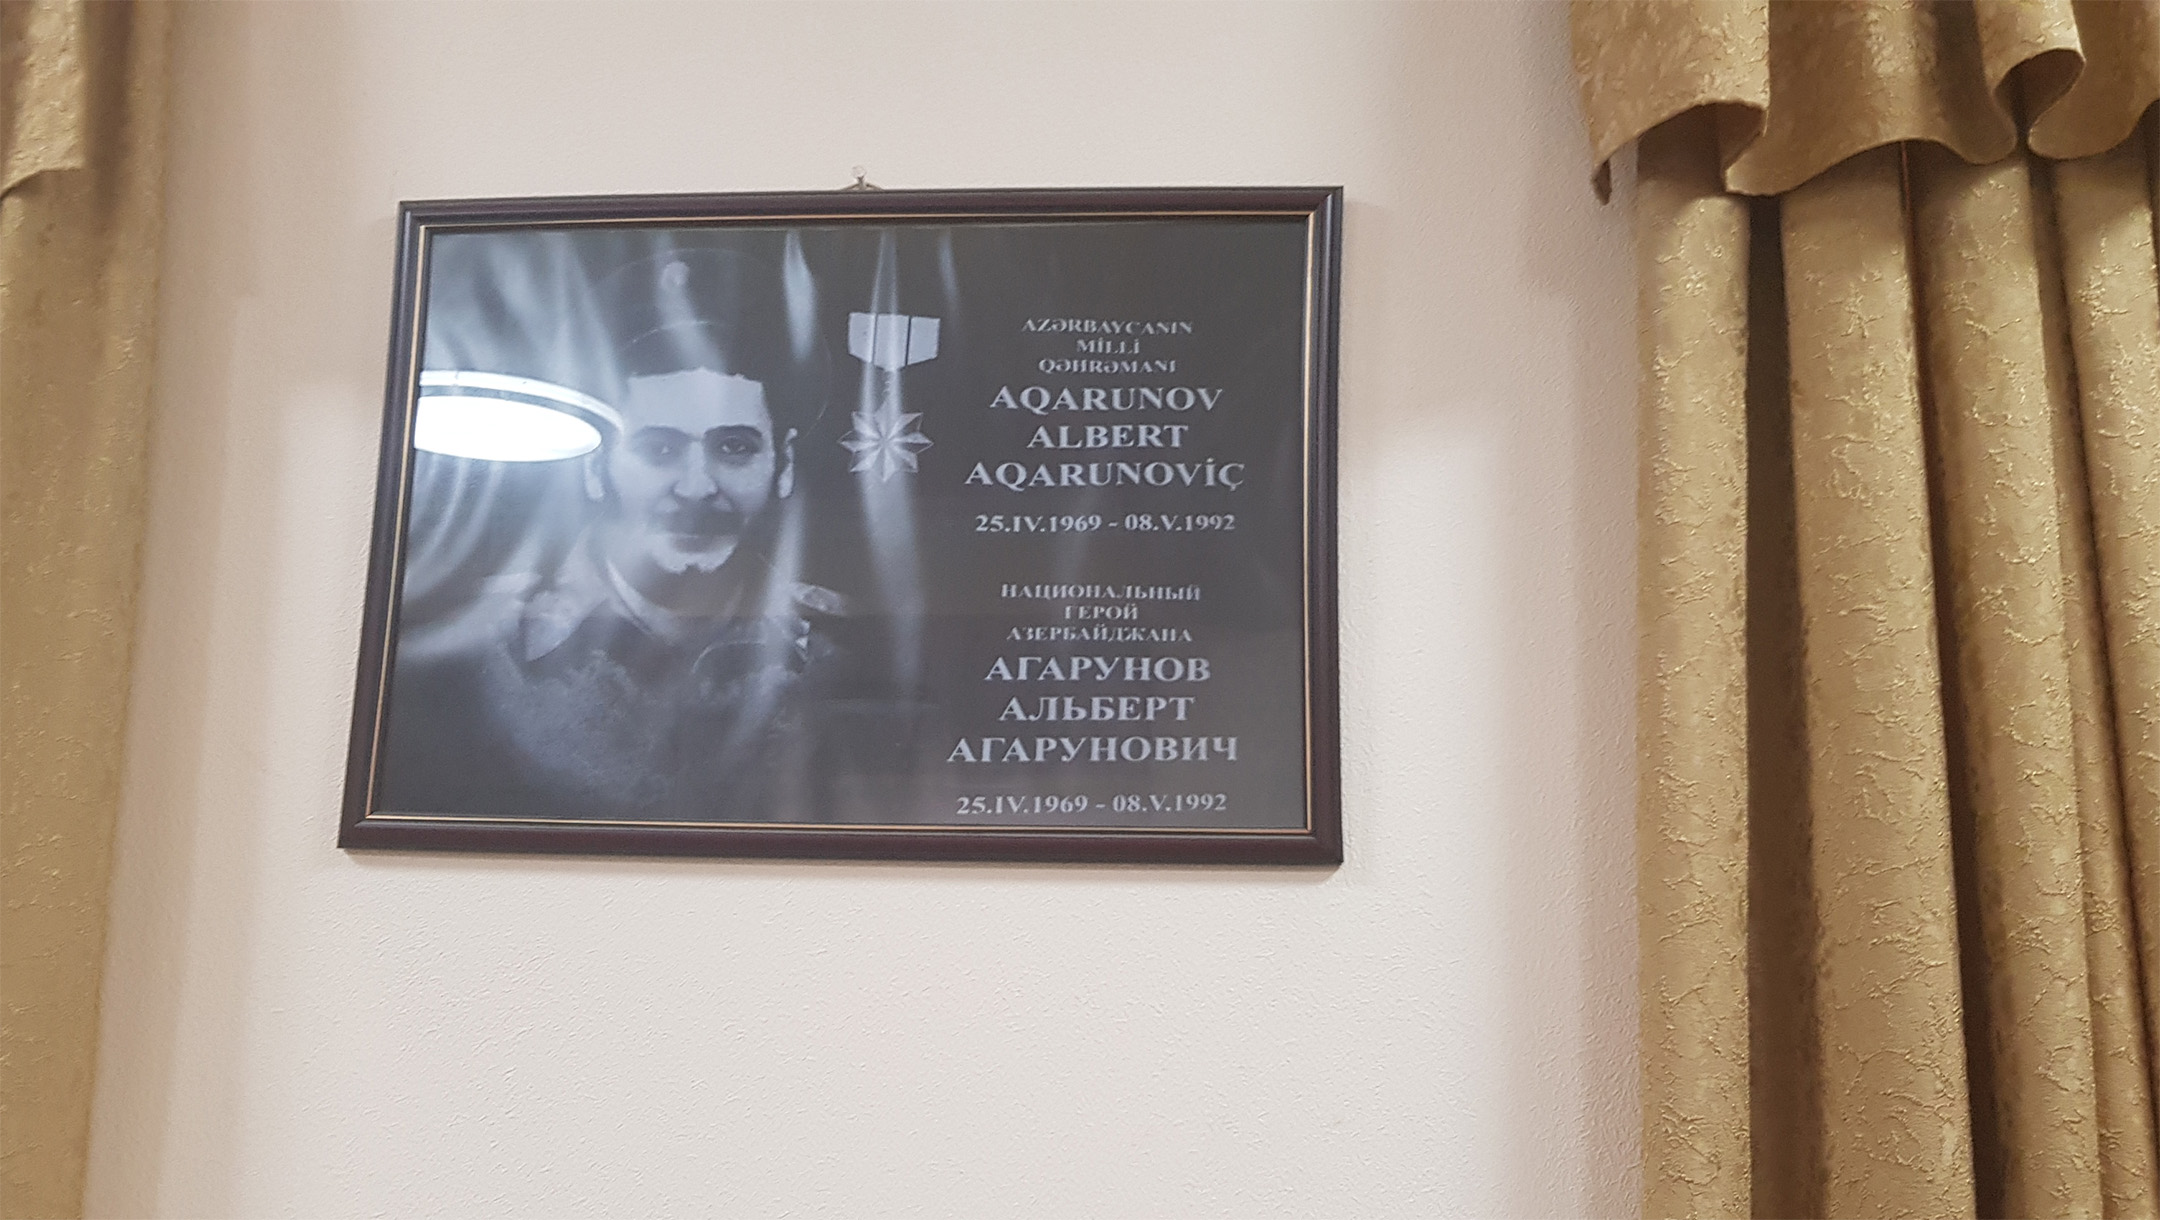 A picture of a Jewish casualty of war from 1992 hangs in the Georgian Synagogue of Baku, Azerbaijan in July 2018. (Cnaan Liphshiz)